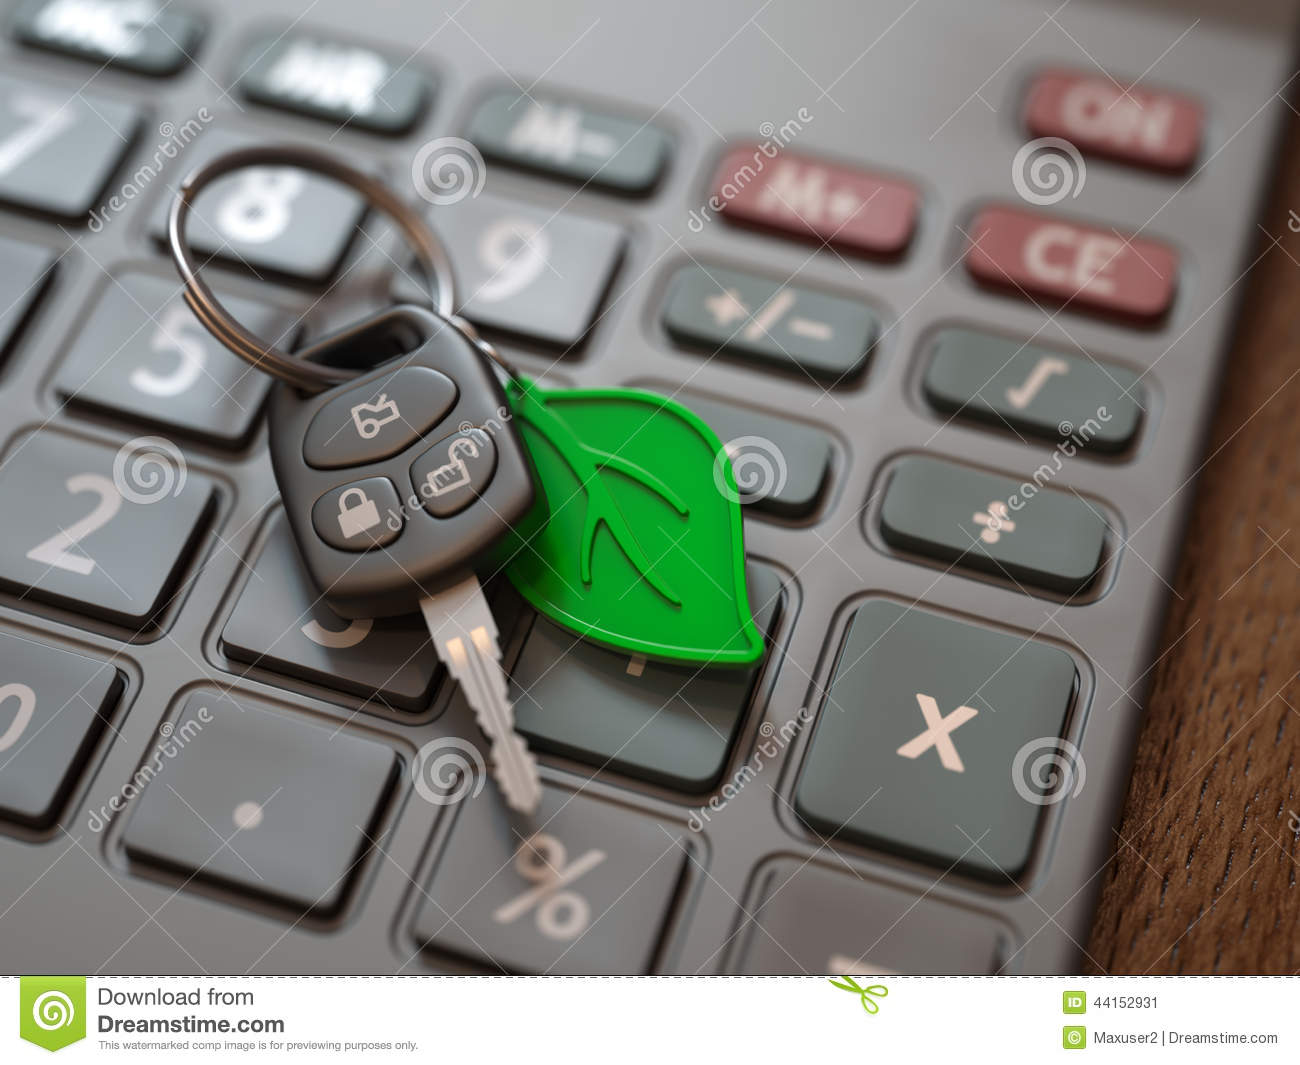 hybrid or electric car expenses calculation stock image image of